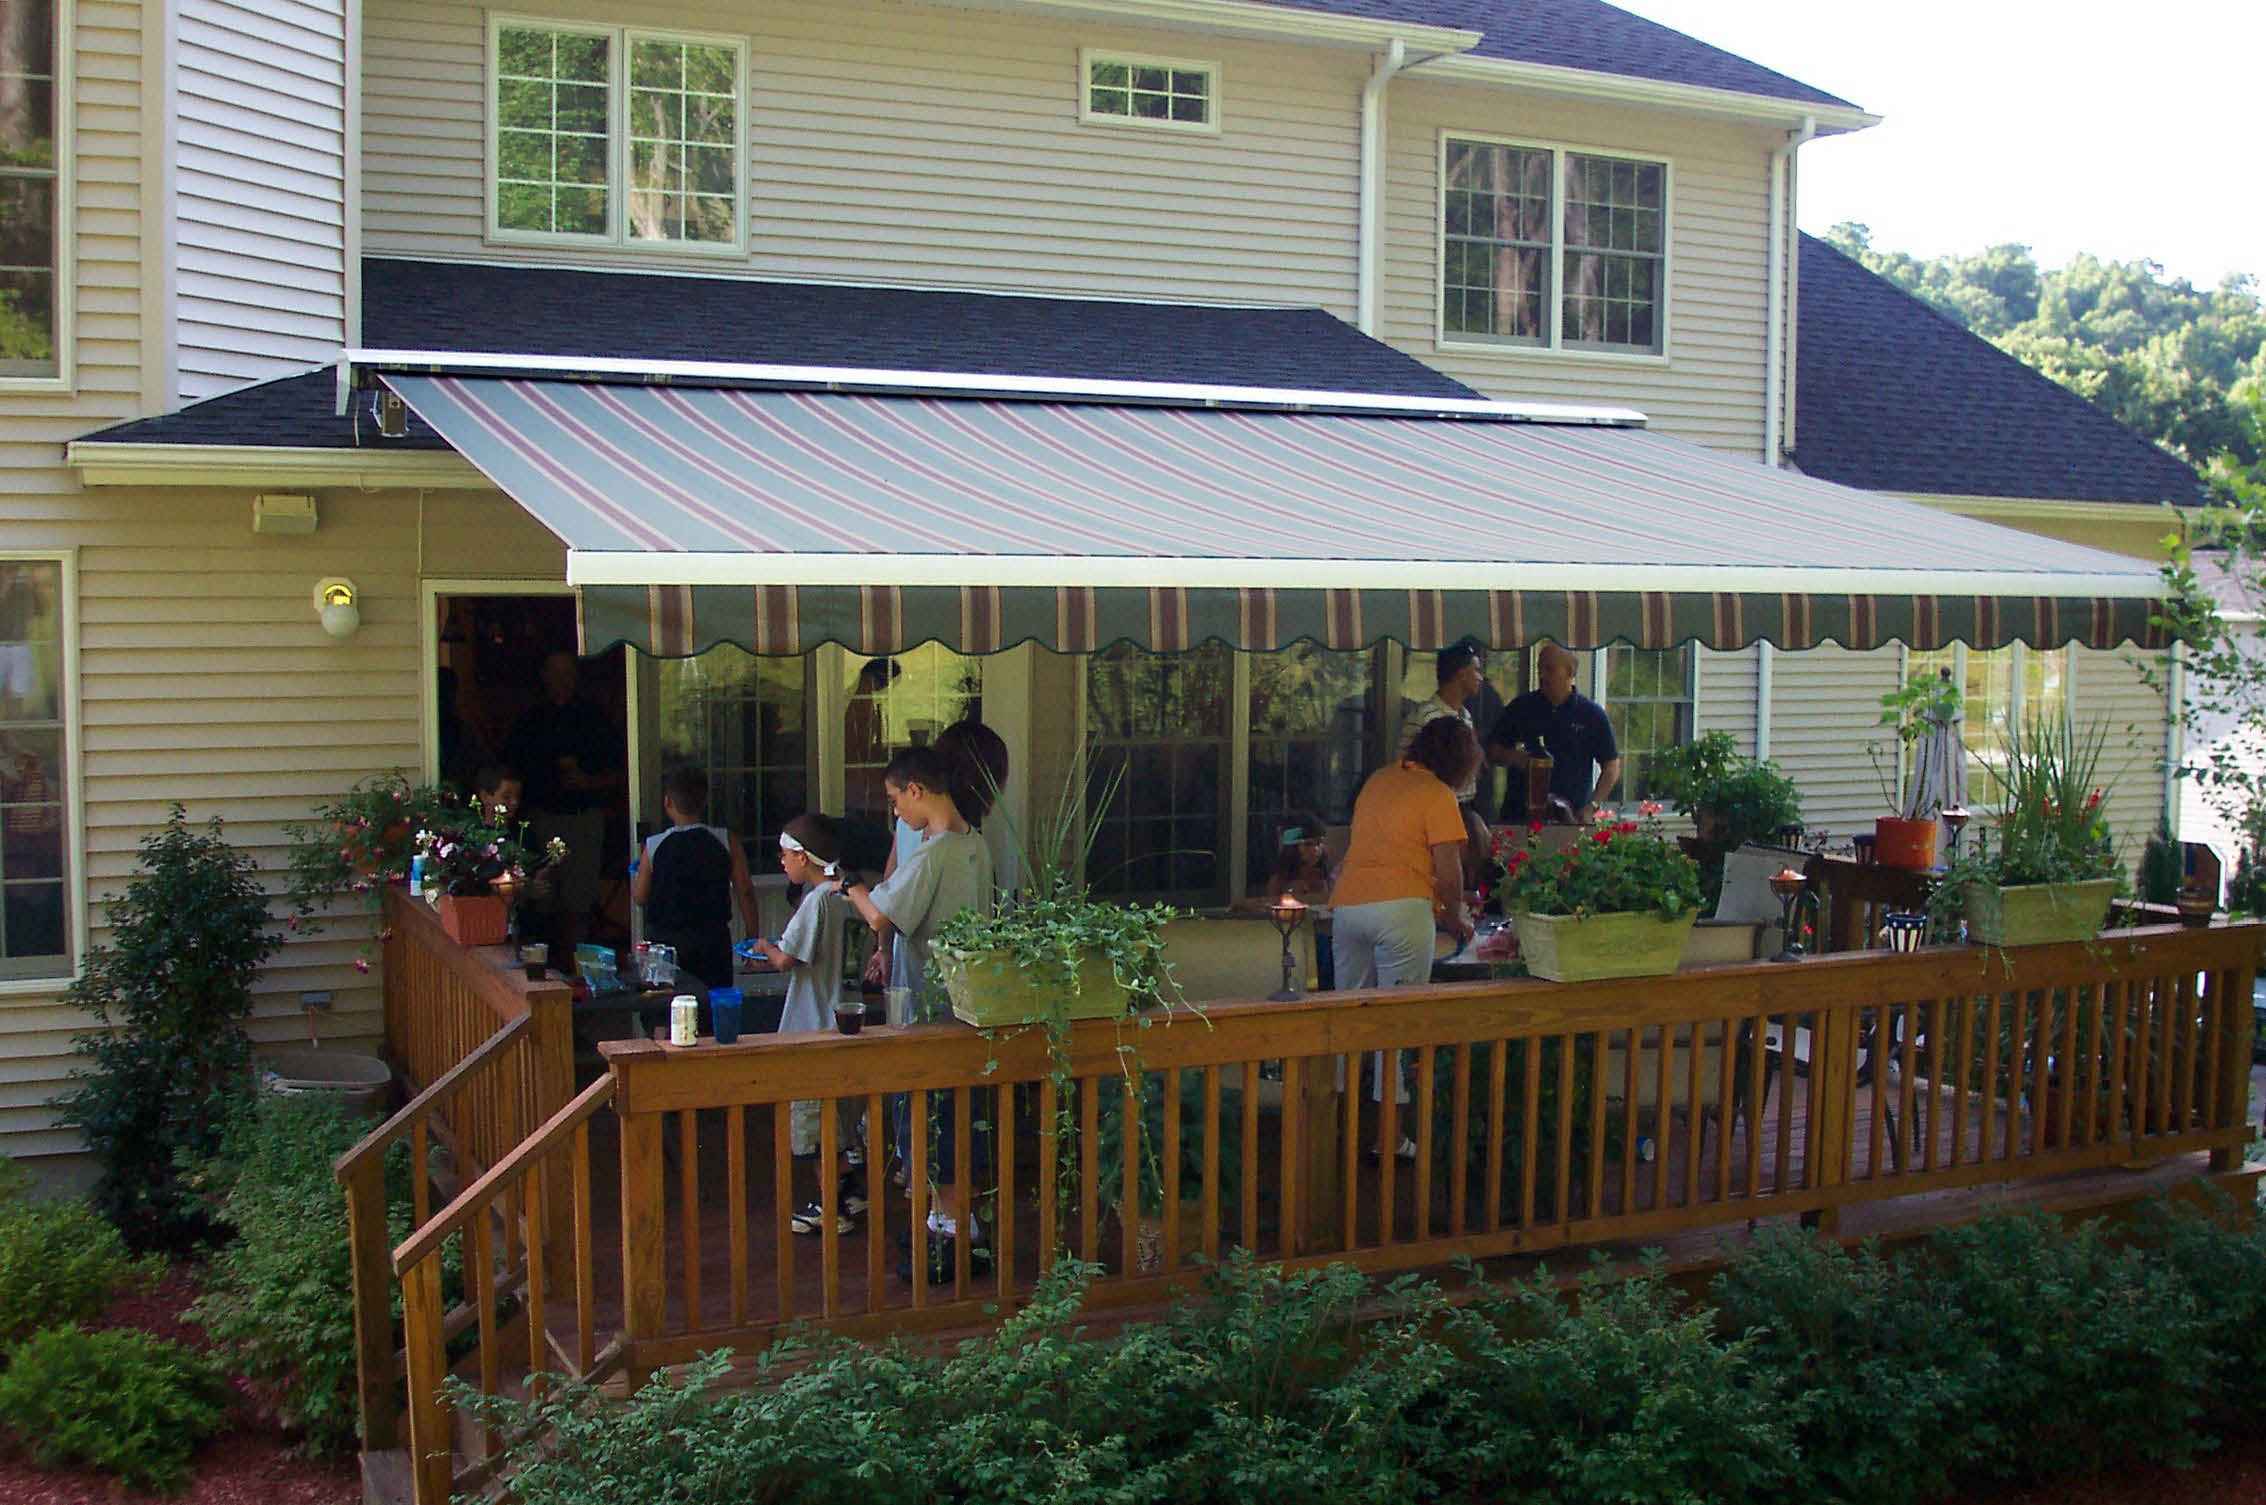 Enjoying a party on the back porch covered with an awning